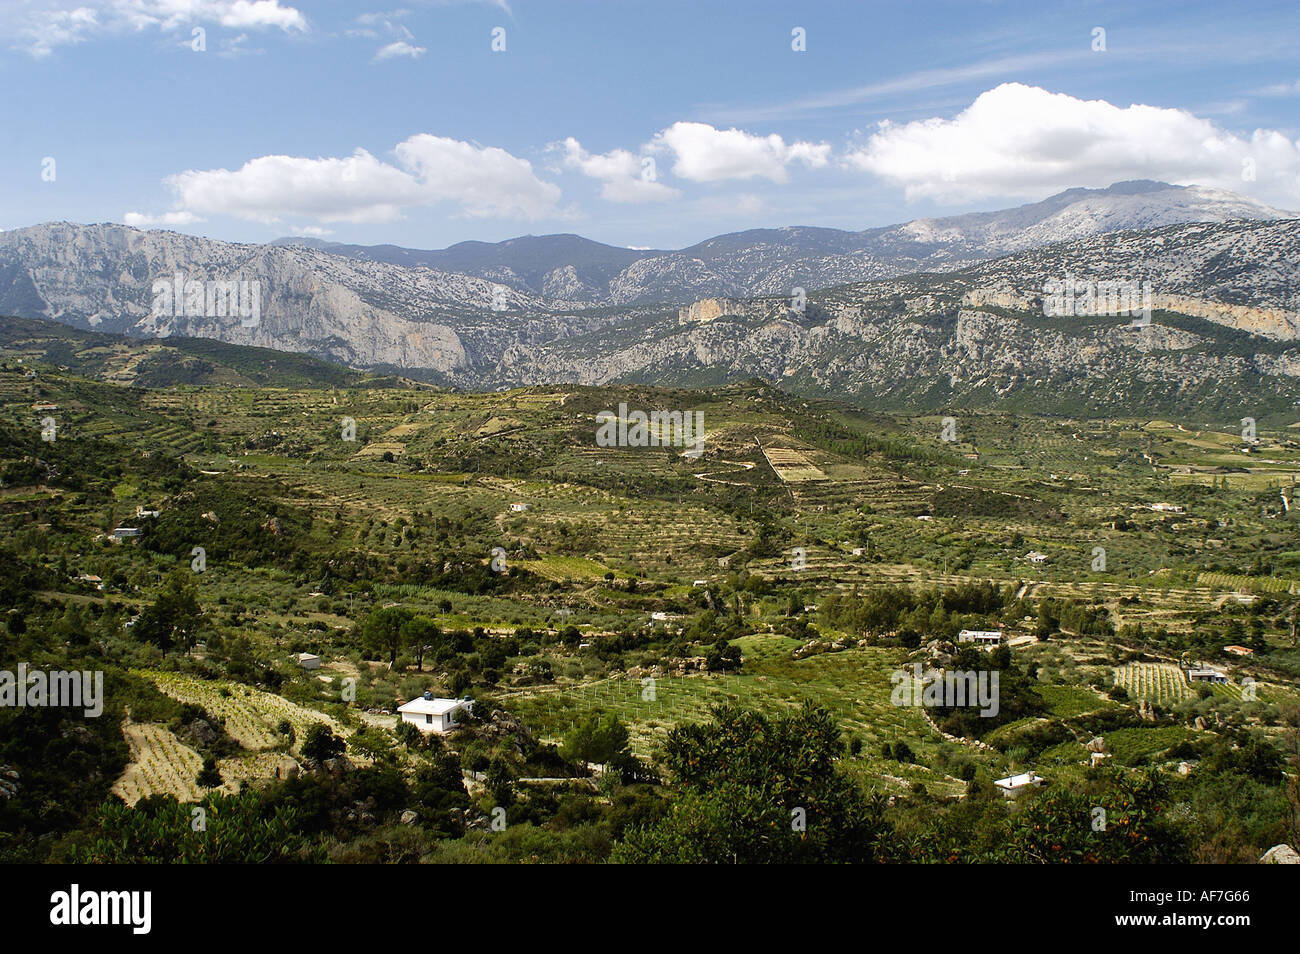 geography / travel, Italy, Sardinia, Parco di Orosei, mountain range, Valle di Oddeone, Additional-Rights-Clearance-Info-Not-Available - Stock Image